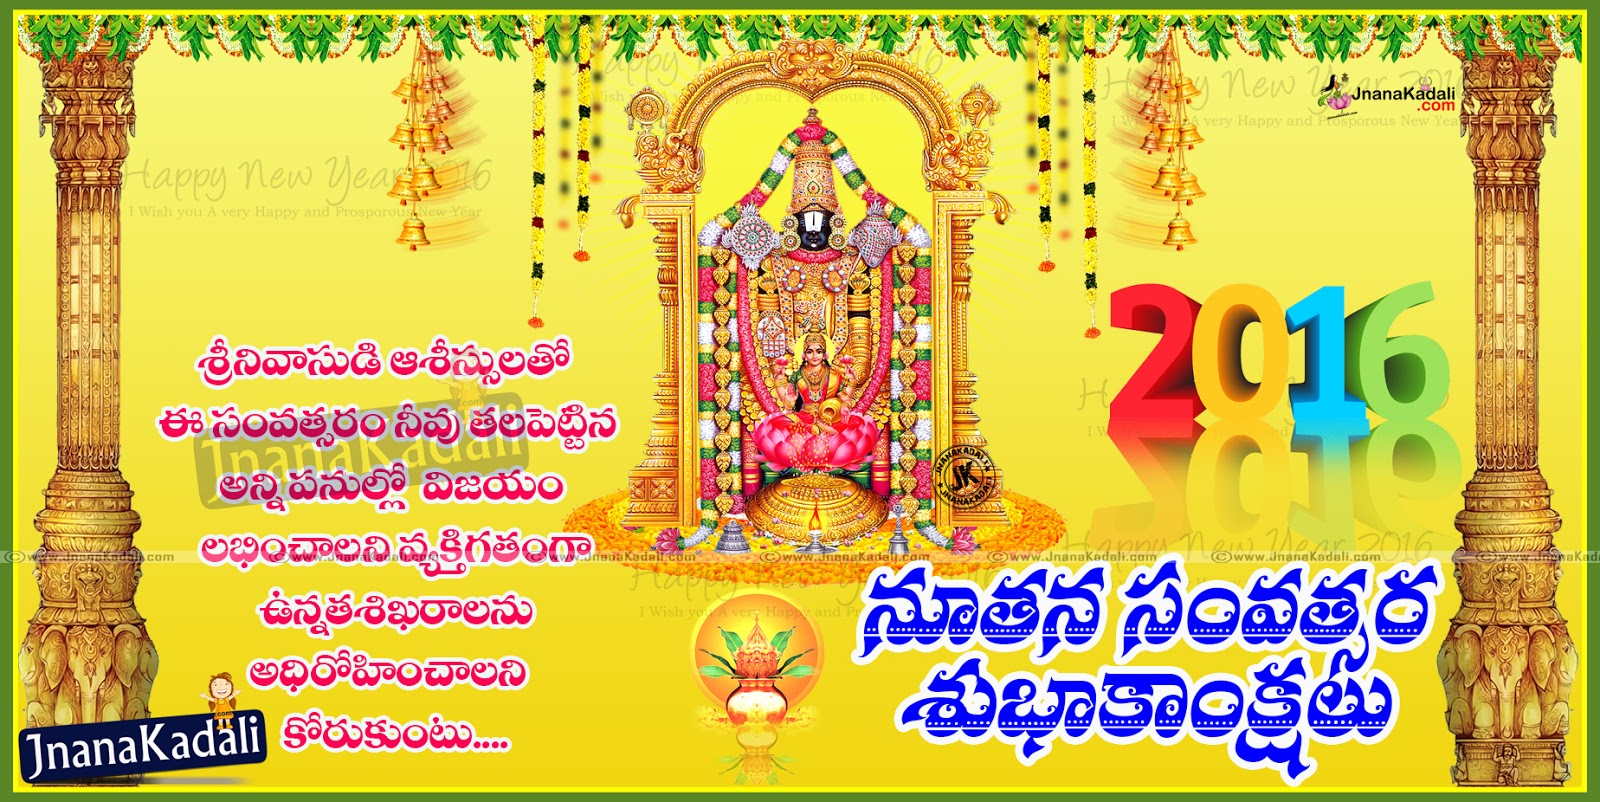 Telugu new year greetings in english images greeting card examples new year telugu wishes with hindu god images telugu latest happy new year telugu latest wallpapers kristyandbryce Gallery